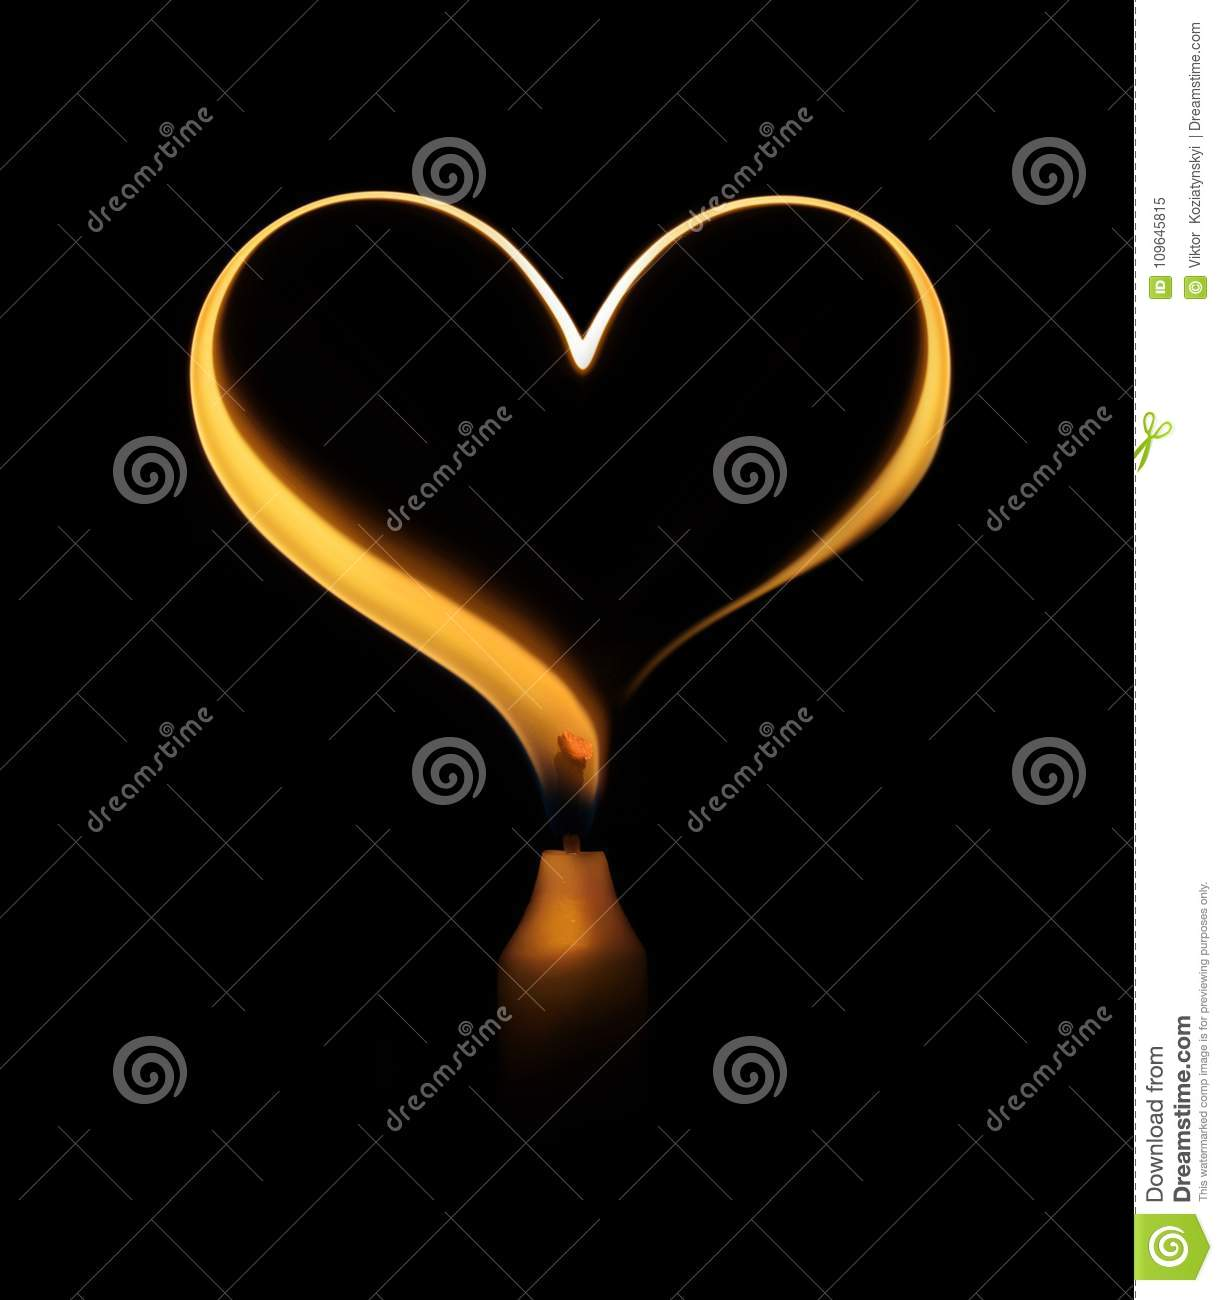 Candle Flame In The Form Of A Heart Stock Image Image Of Darkness